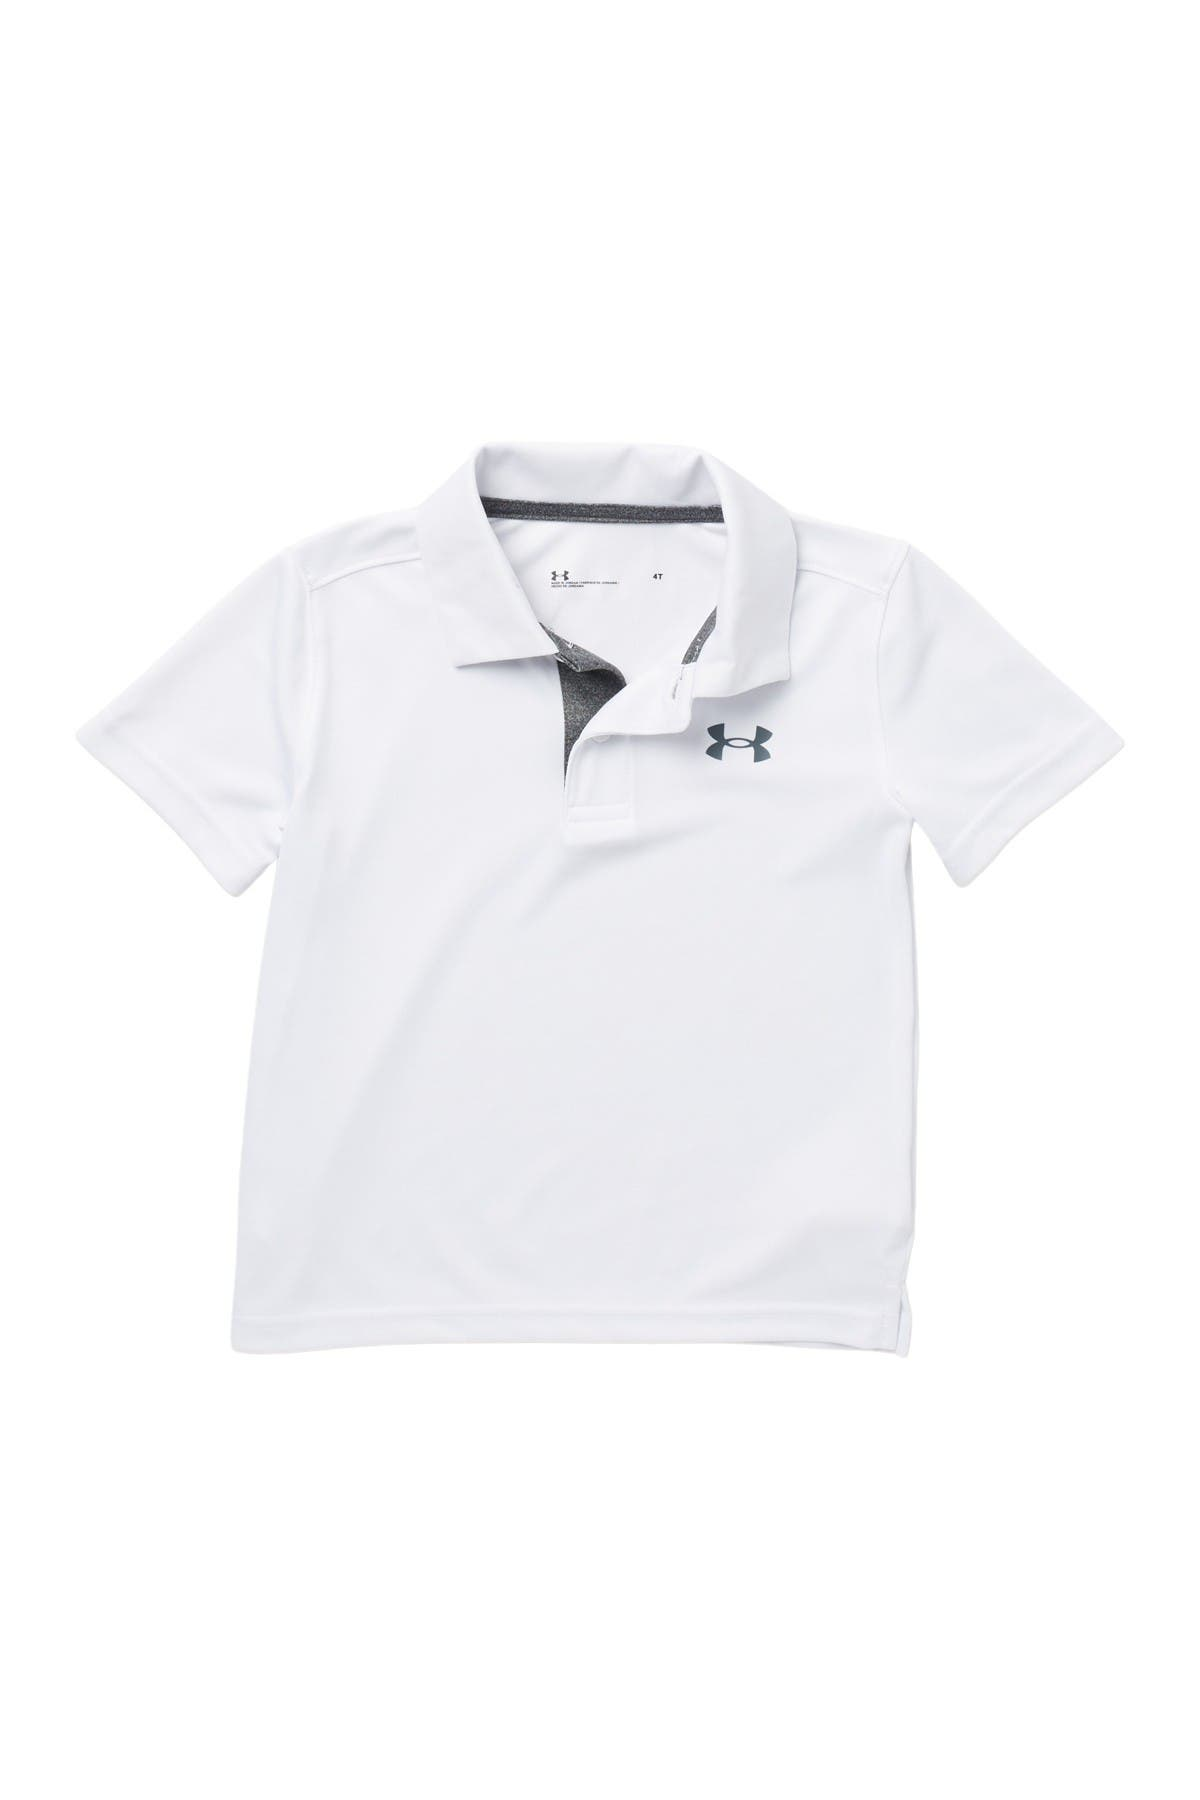 Image of Under Armour Match Play Polo